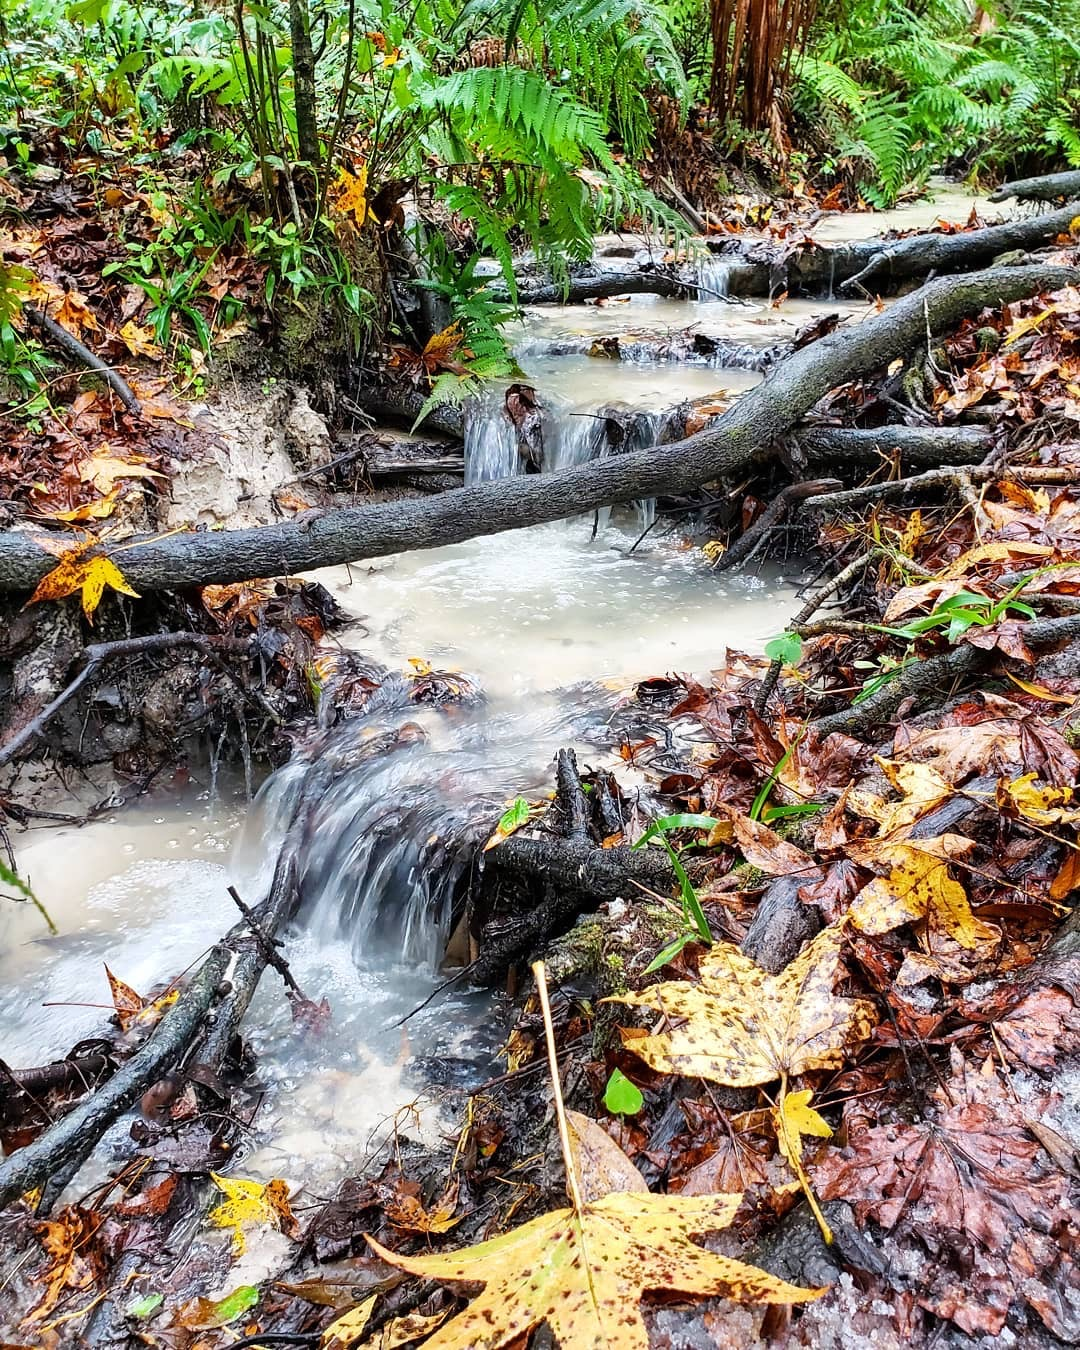 Small waterfall flowing over leaves and small branches.